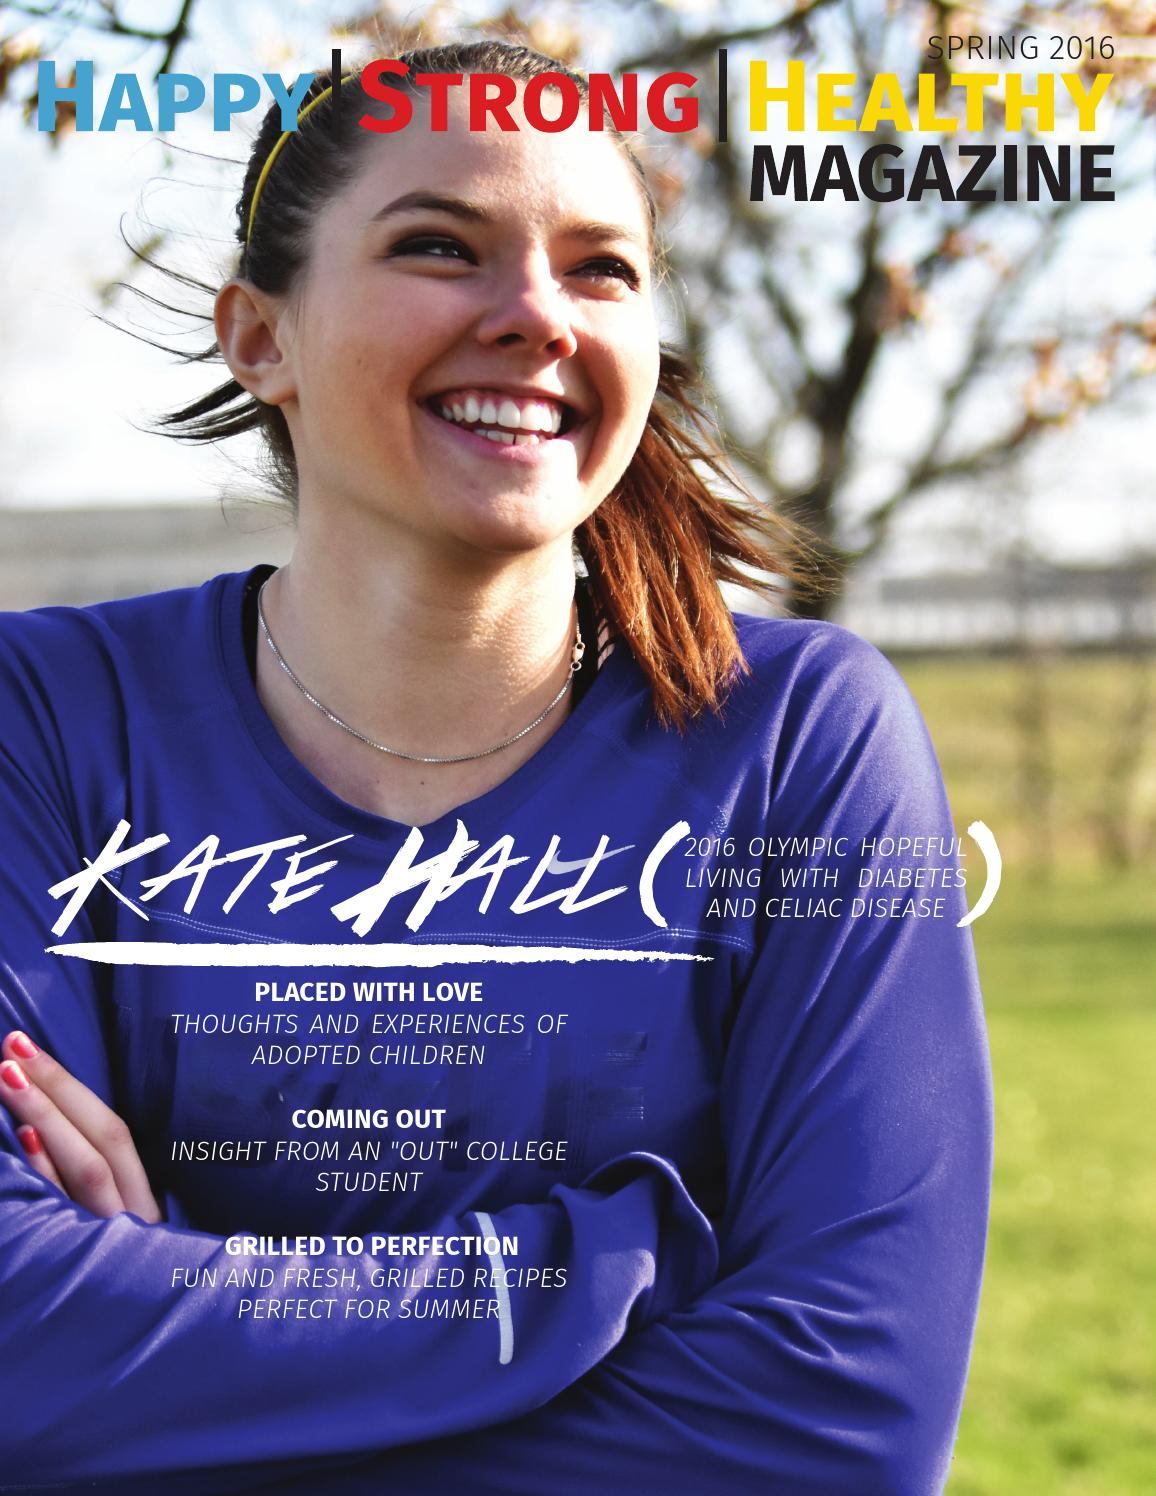 Happy, Strong, and Healthy Magazine spring 2016 by Alyssa